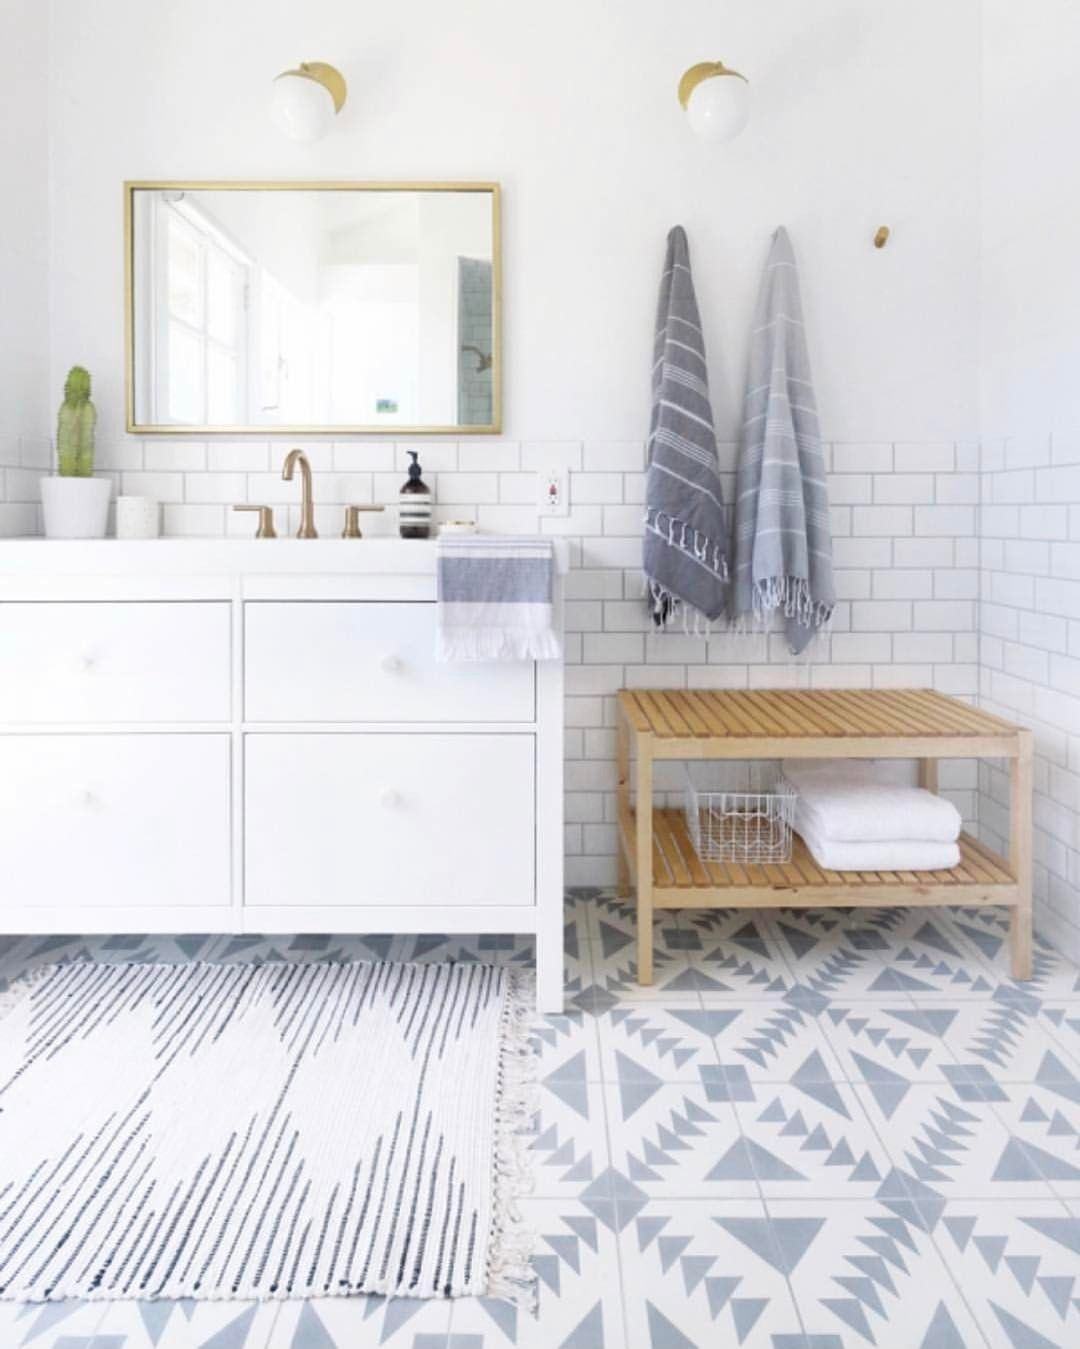 35 Amazing Bathroom Remodel DIY Ideas that Give a Stunning Makeover ...